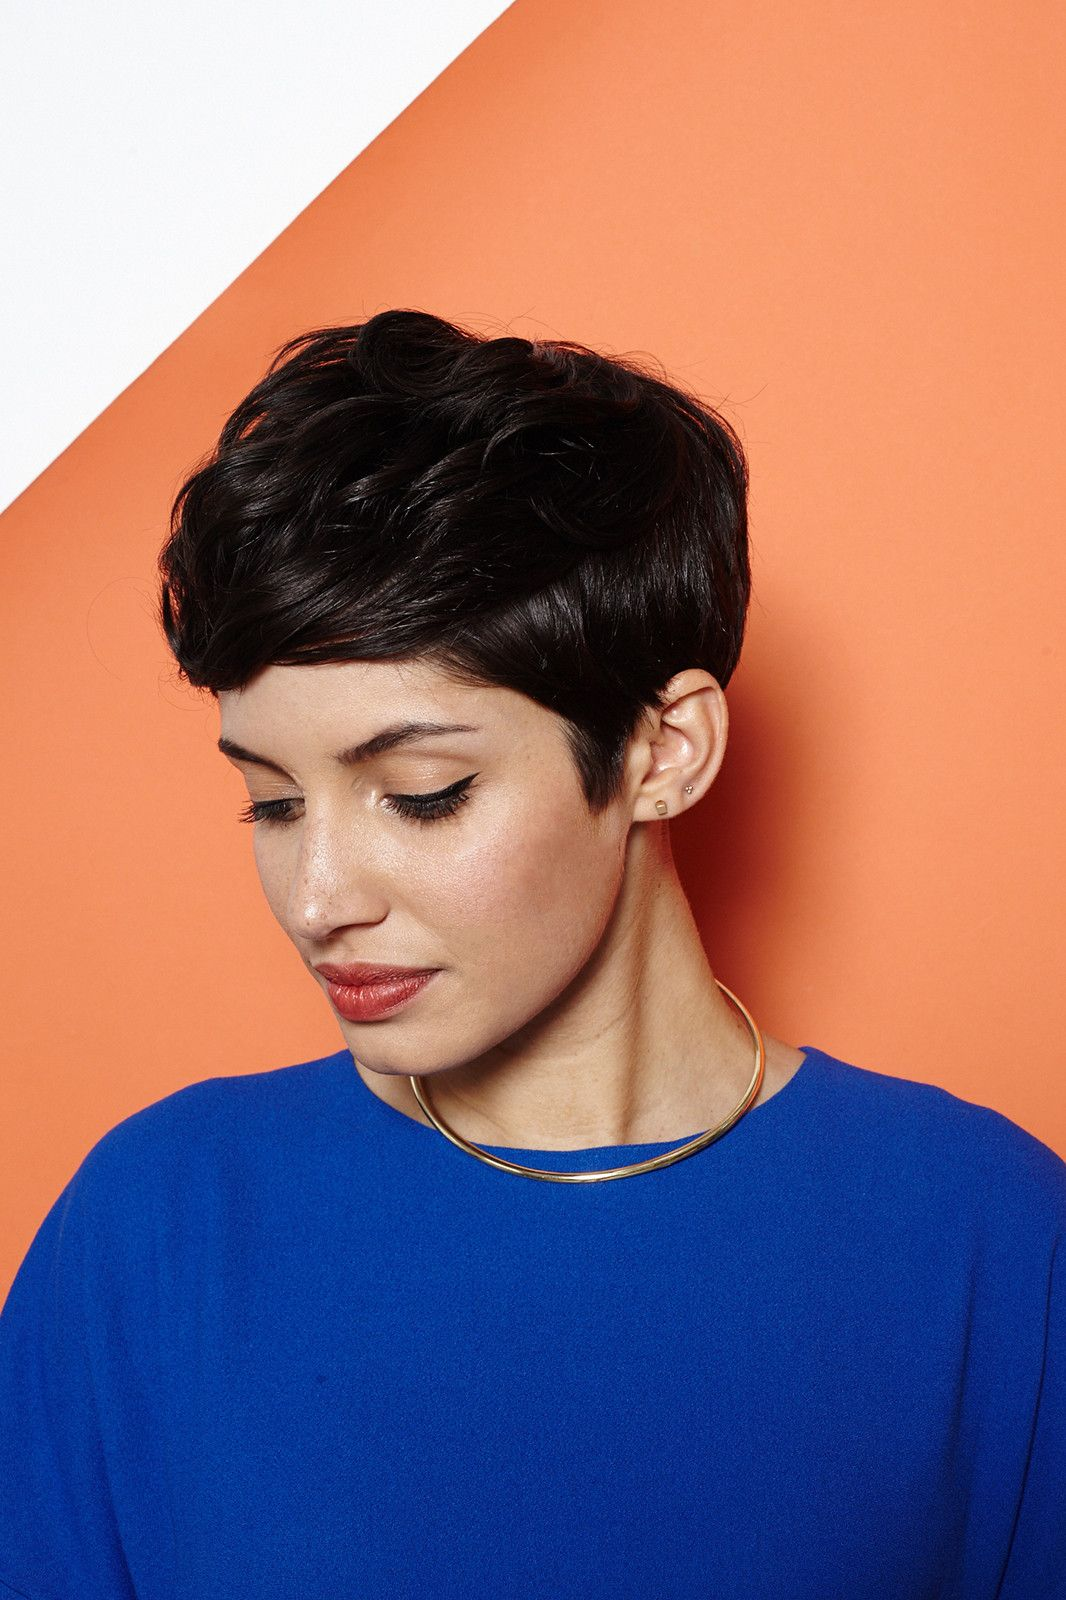 Pixie hairstyles new styles for really short hair short modelli